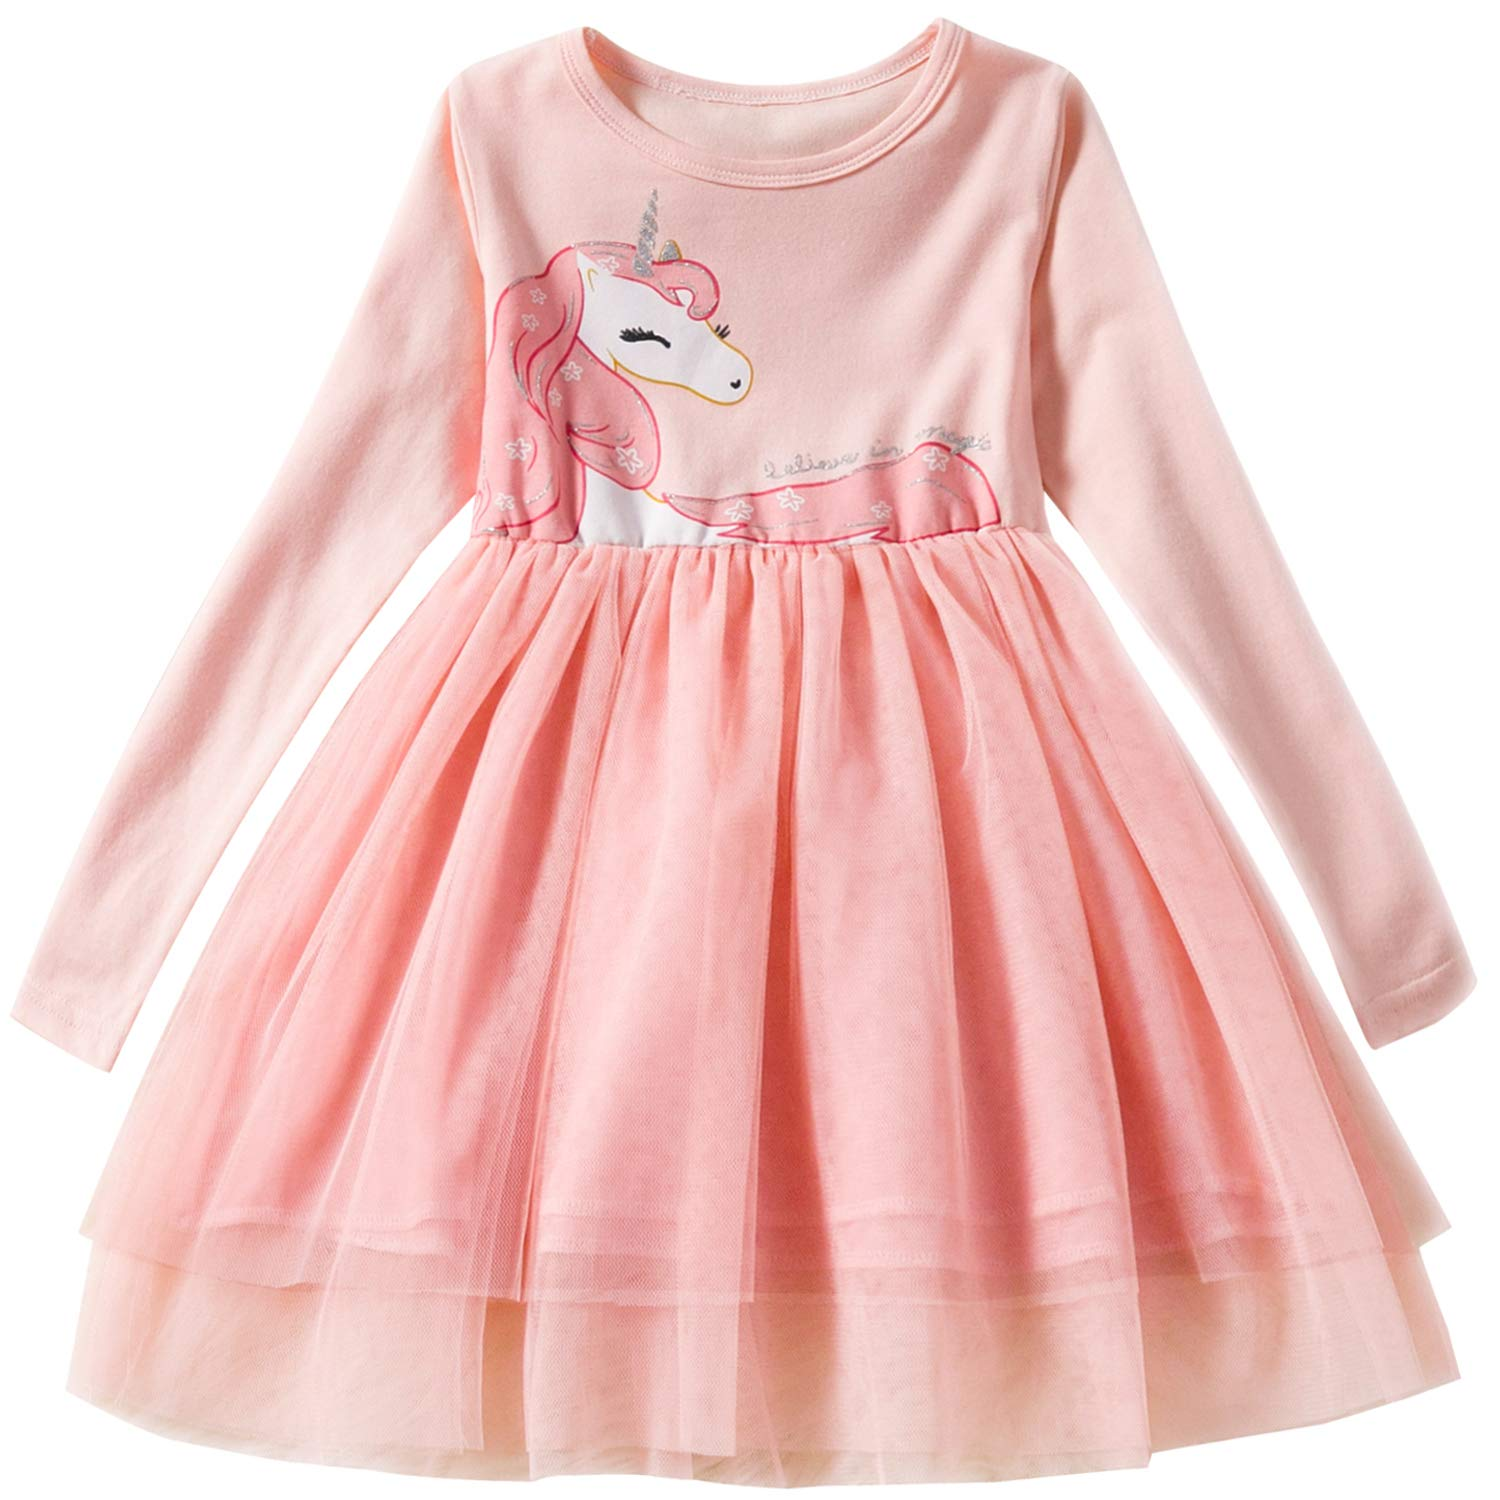 8d368db890 Amazon.com  TTYAOVO Toddler Girls Winter Clothes Long Sleeve Girls Dresses  Kids 2-8 Years  Clothing